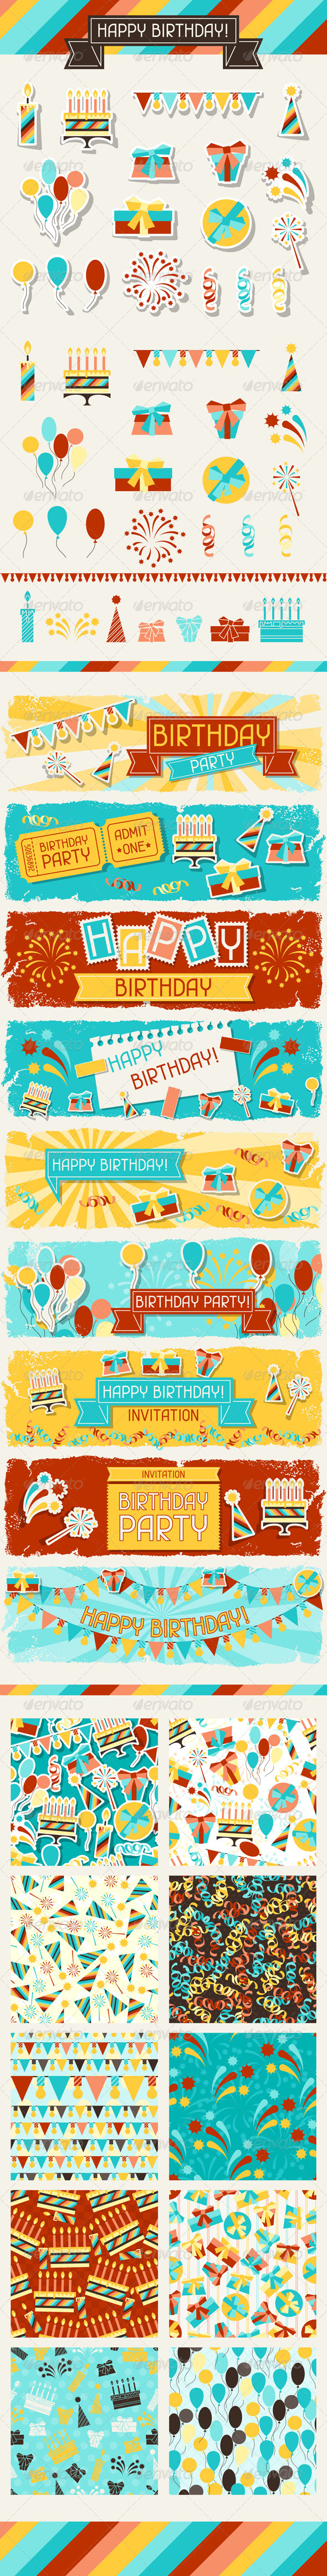 GraphicRiver Happy Birthday Icons Banners and Patterns 5084439